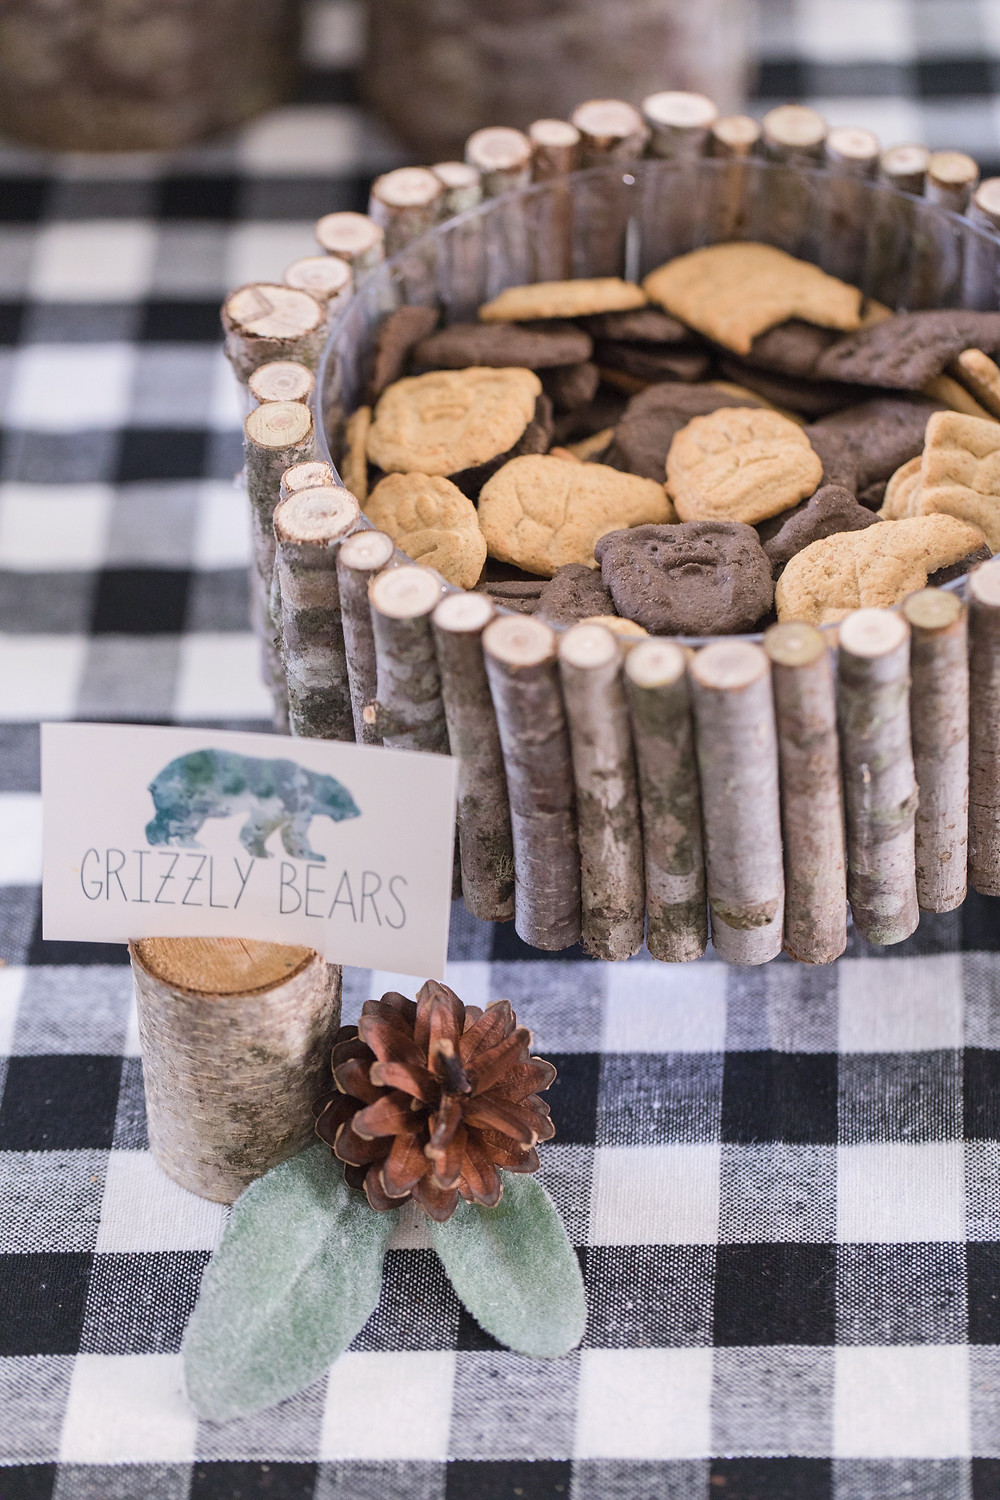 Grizzle Bears Kodiak Bears Party Food - Wild One Smash Cake Photo Session - One Wild Year - Boy's 1st Birthday Party - Ideas, inspiration, decor, party food and menu, kids activities and games, cake smash photo session, bear theme, wild one wilderness tree teepee outdoor theme, decorations, cake, cookies, and more!